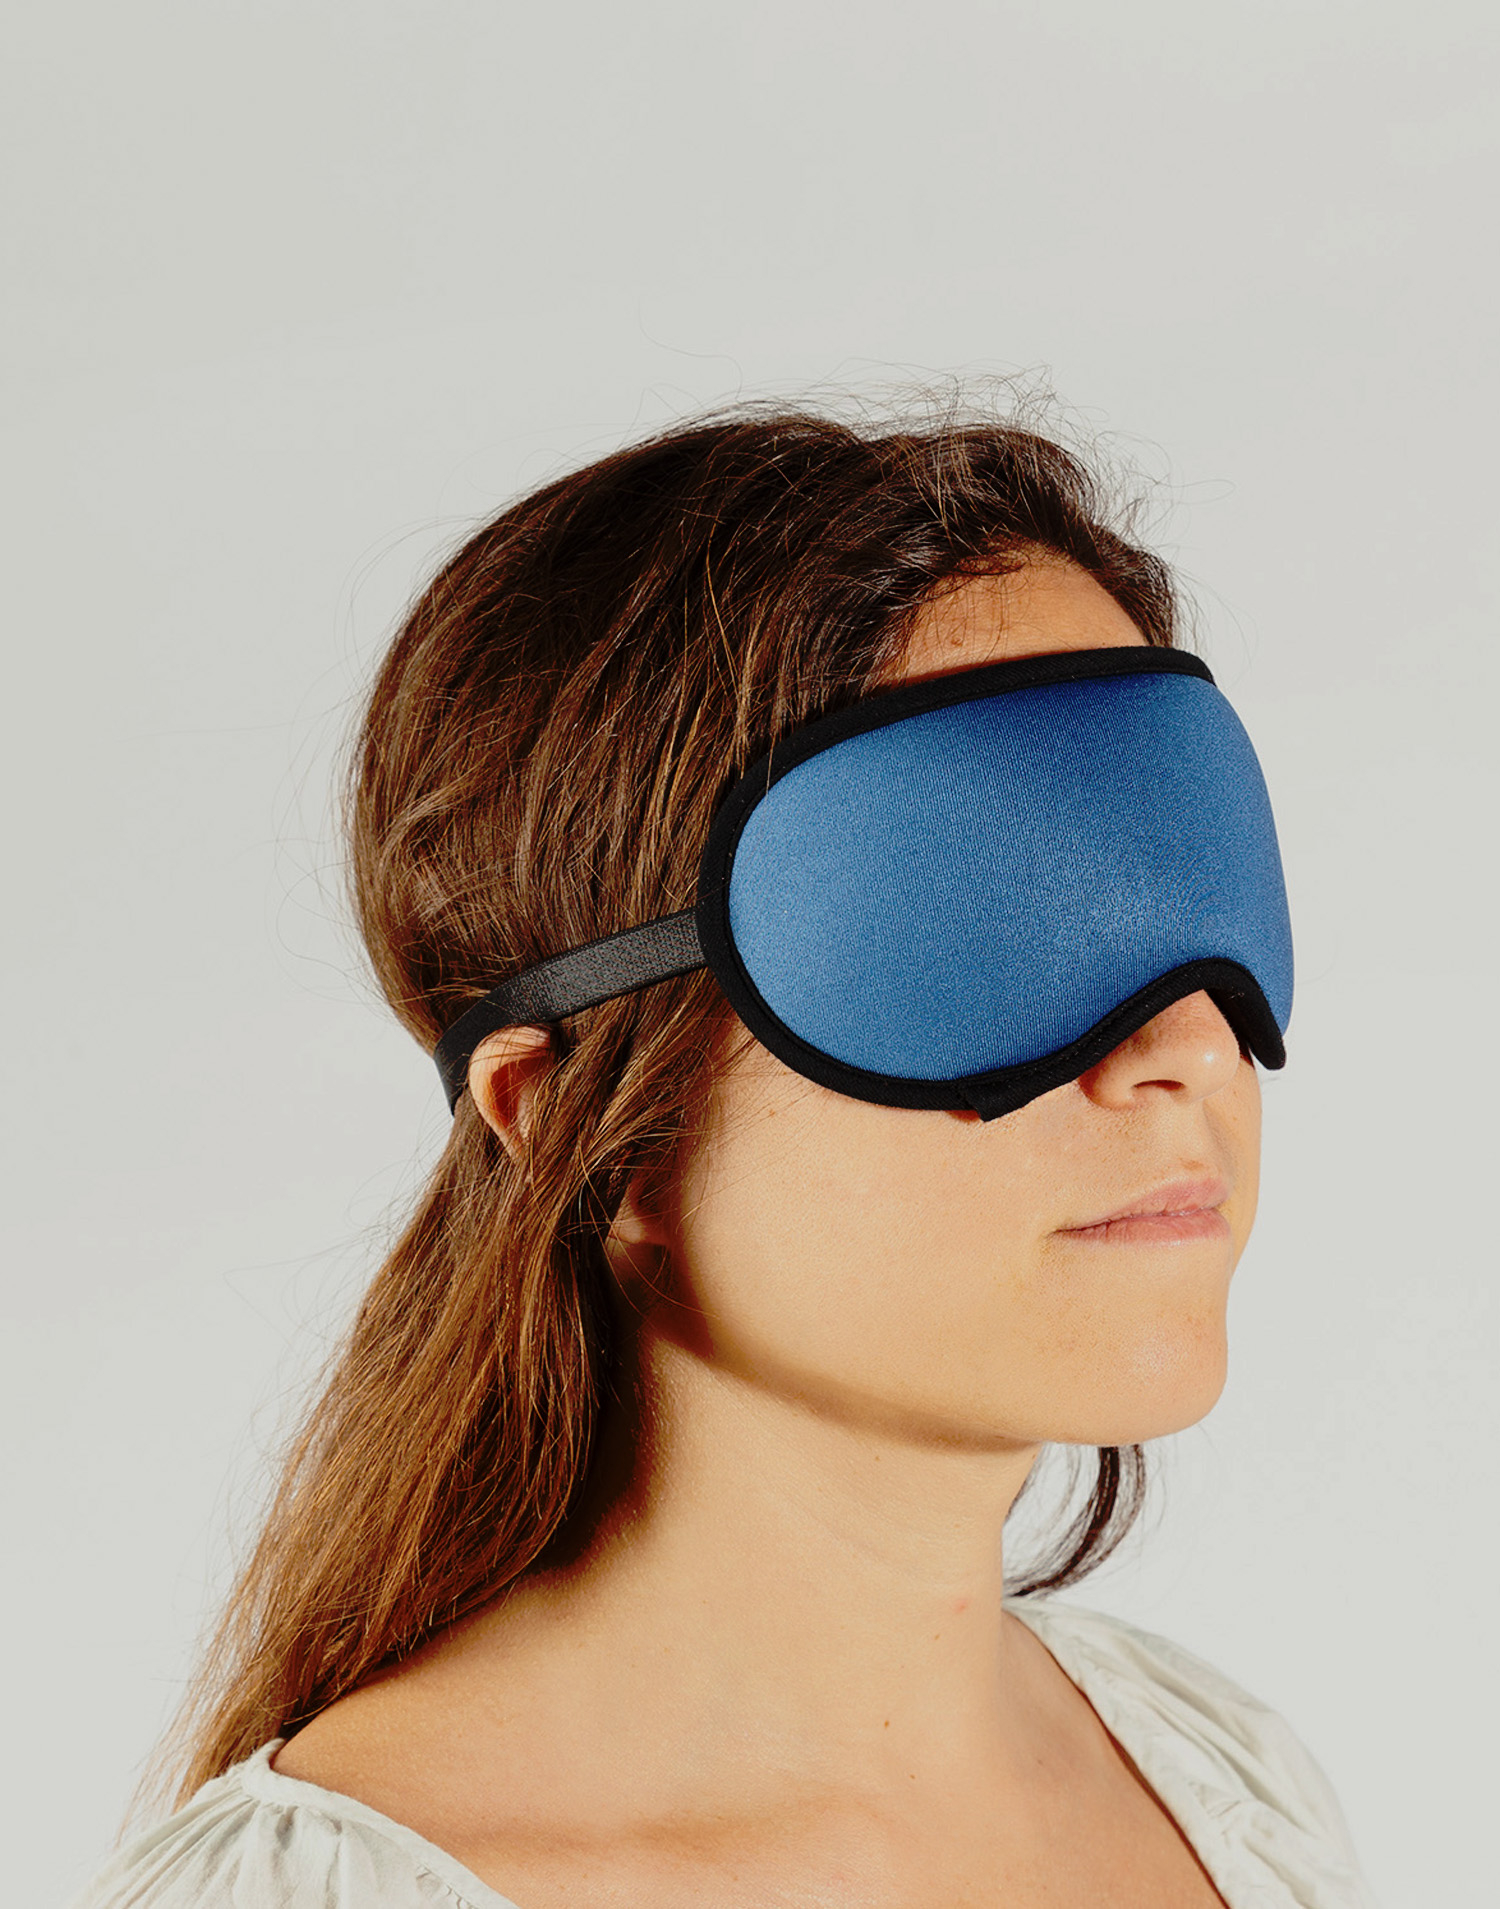 Foam sleep mask